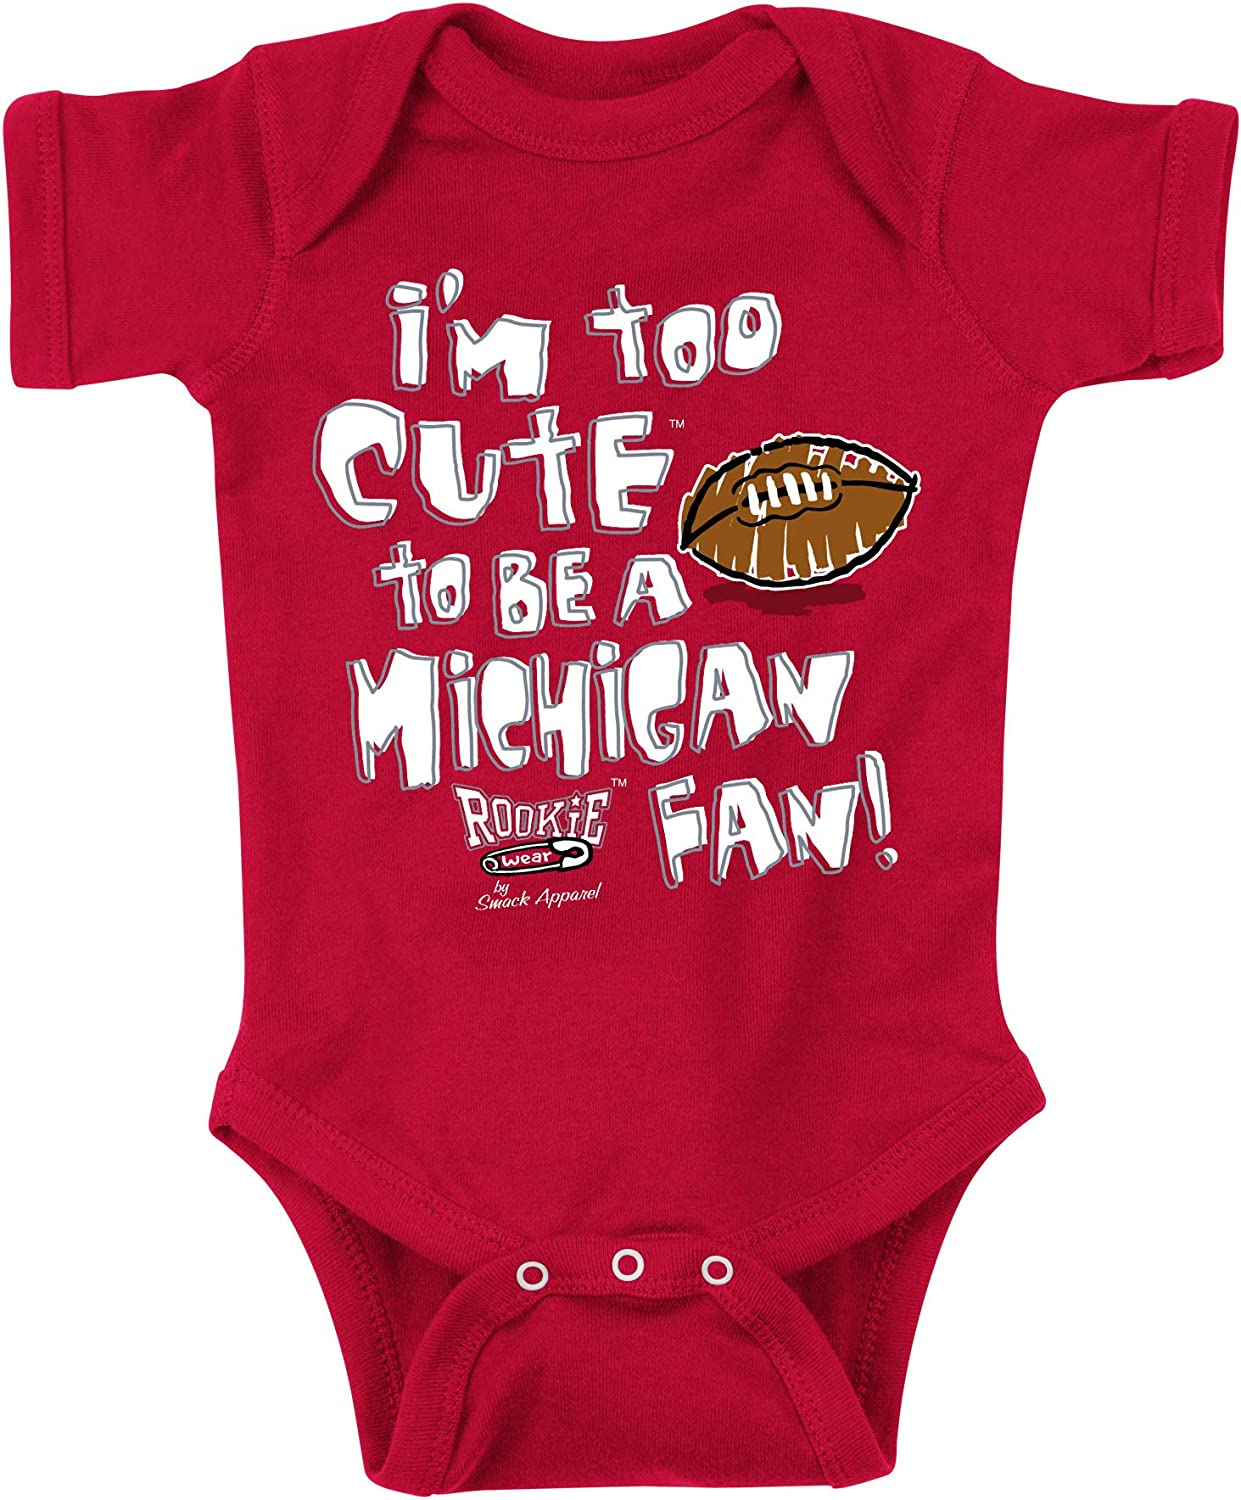 Smack Apparel Chicago Baseball Fans Too Cute Royal Onesie or Toddler Tee Anti-Cards NB-4T